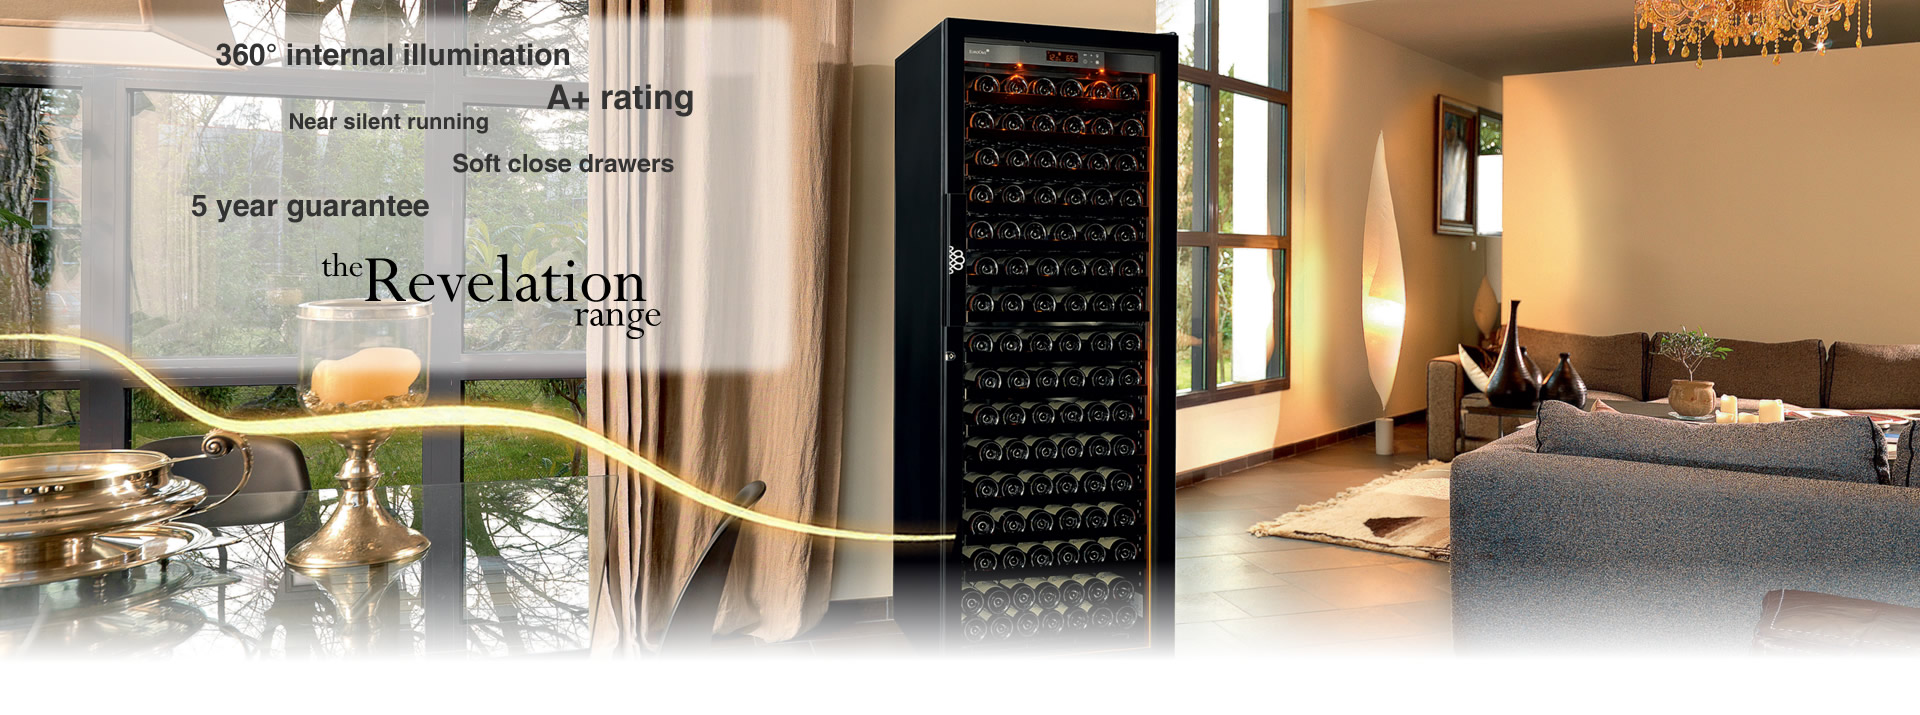 Freestanding Wine Cellars | Eurocave | Eurocave Confort Vieillitheque Manual